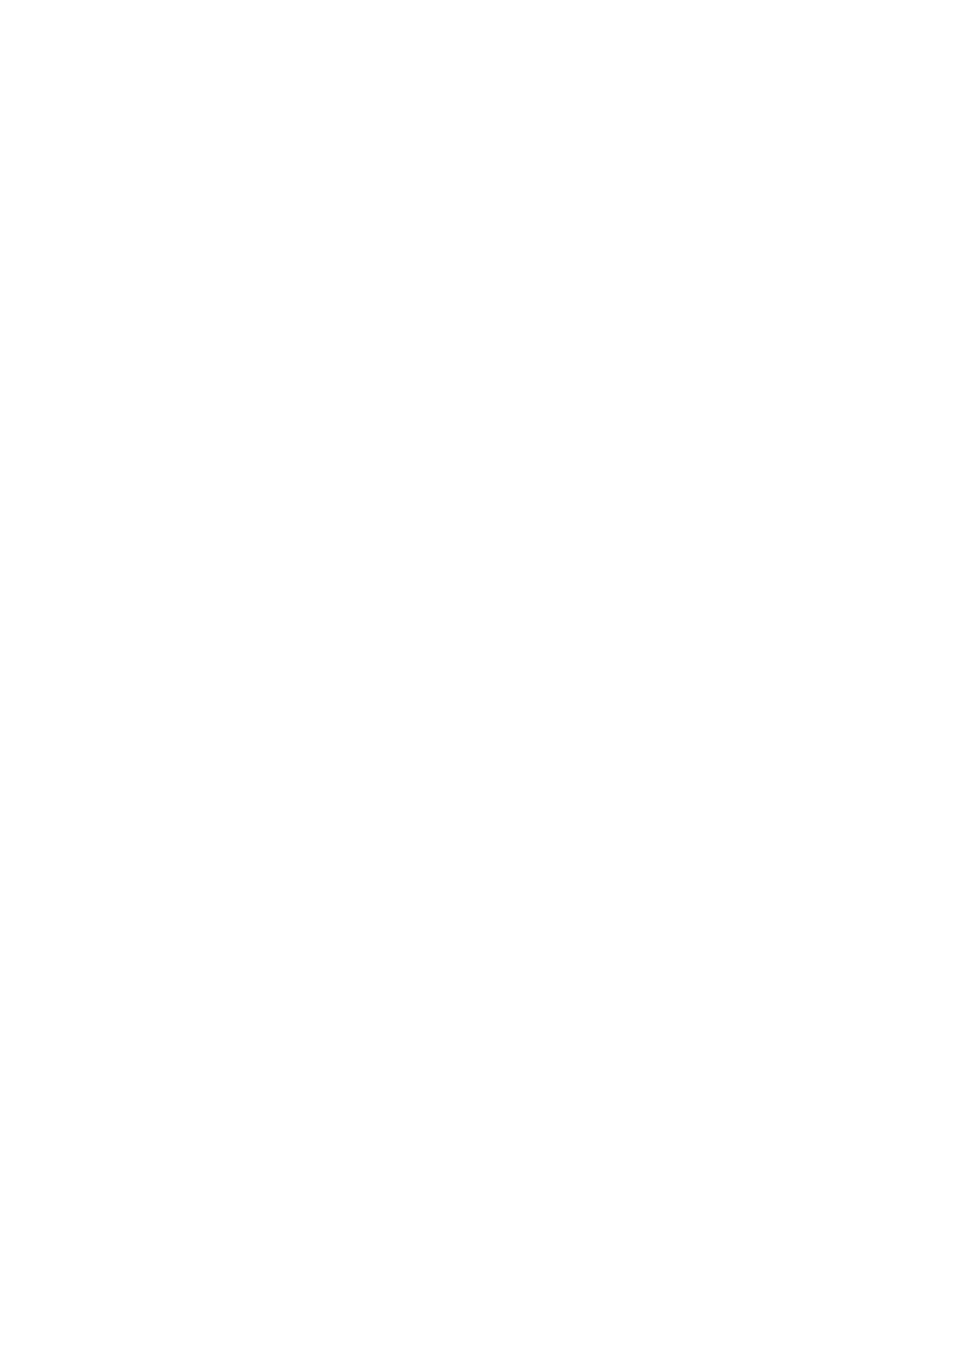 Nubia N1 Nx541j User Manual 41 Pages Also For Z11 Maxnx523j Nikon D40 Usb Cable Schematic Mini